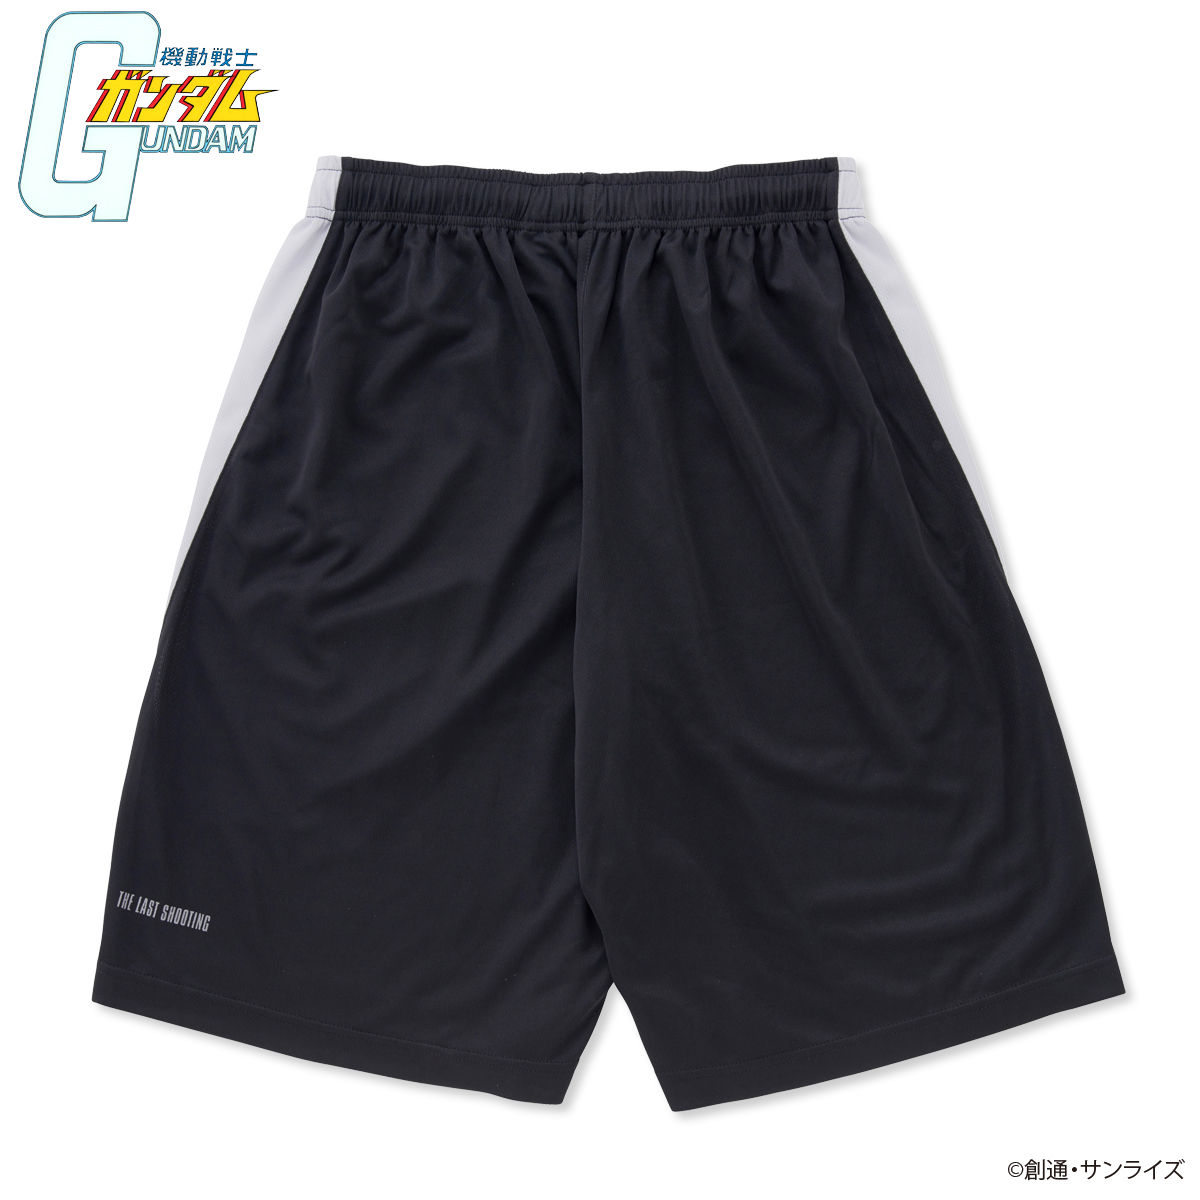 Mobile Suit Gundam The Last Shooting Running Shorts